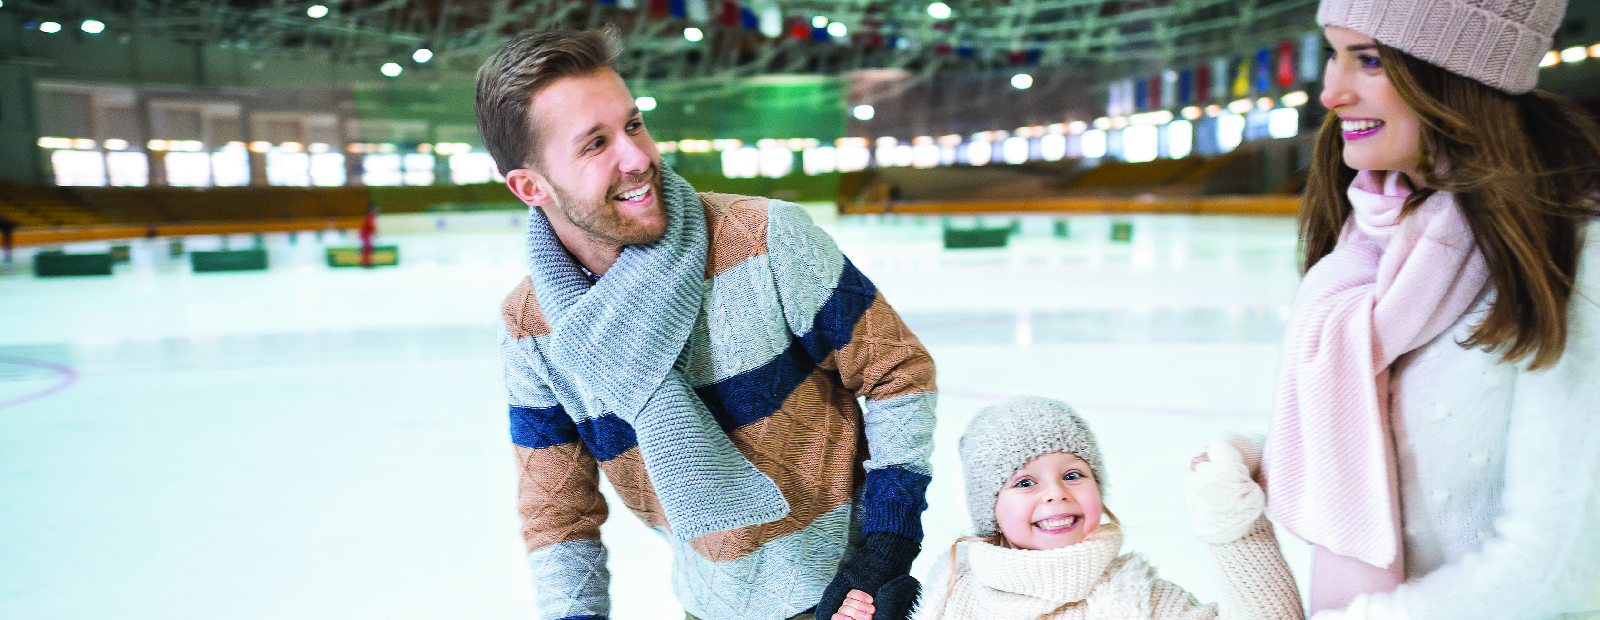 Husband and wife skating in arena with daughter